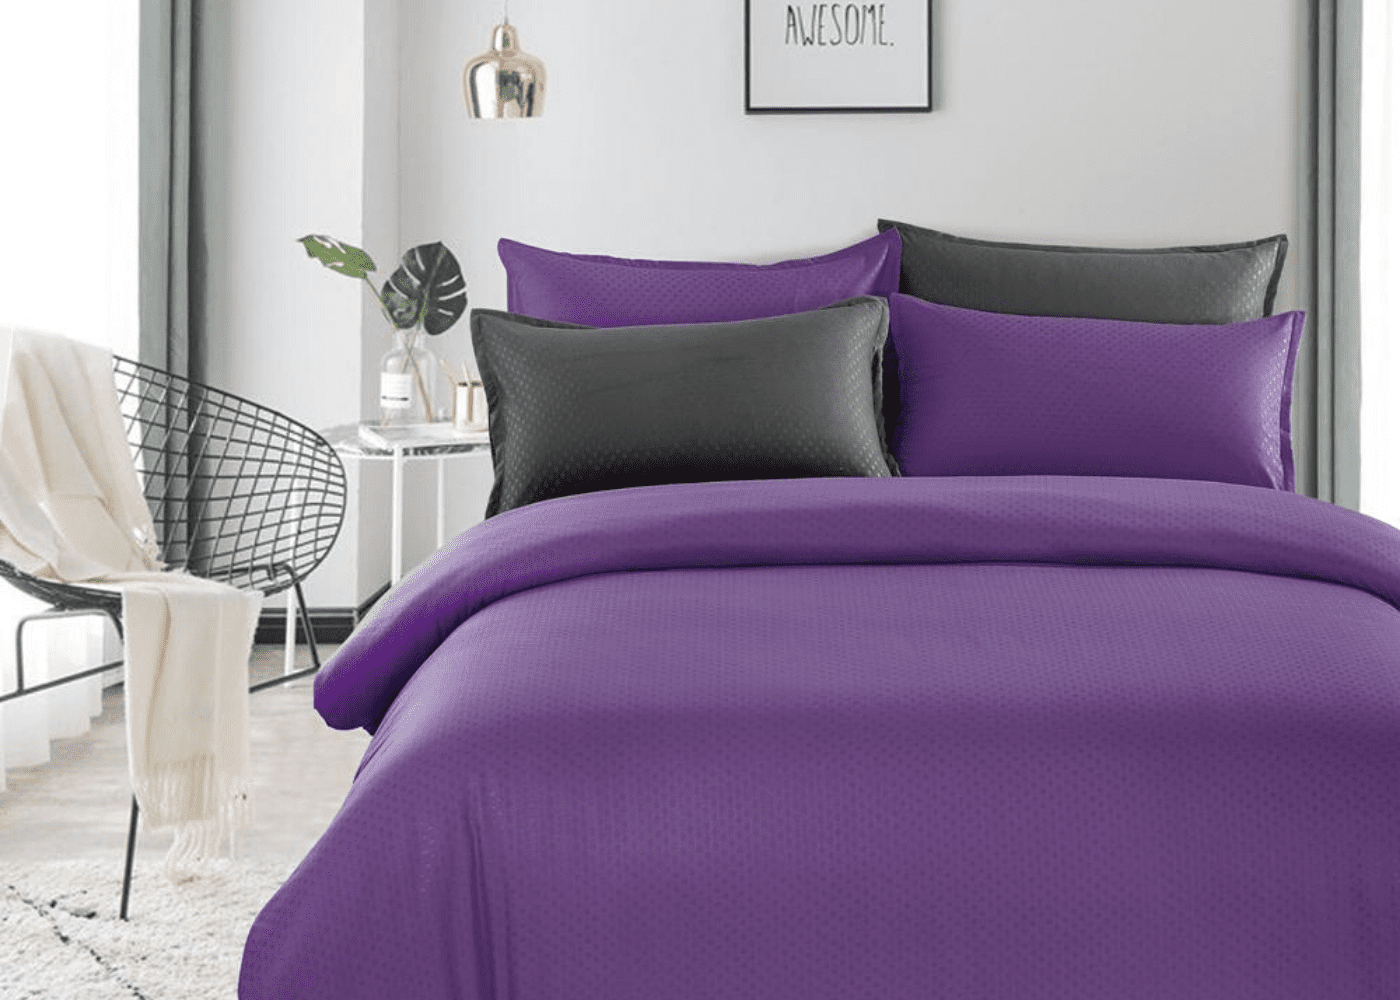 Epitex bed linen